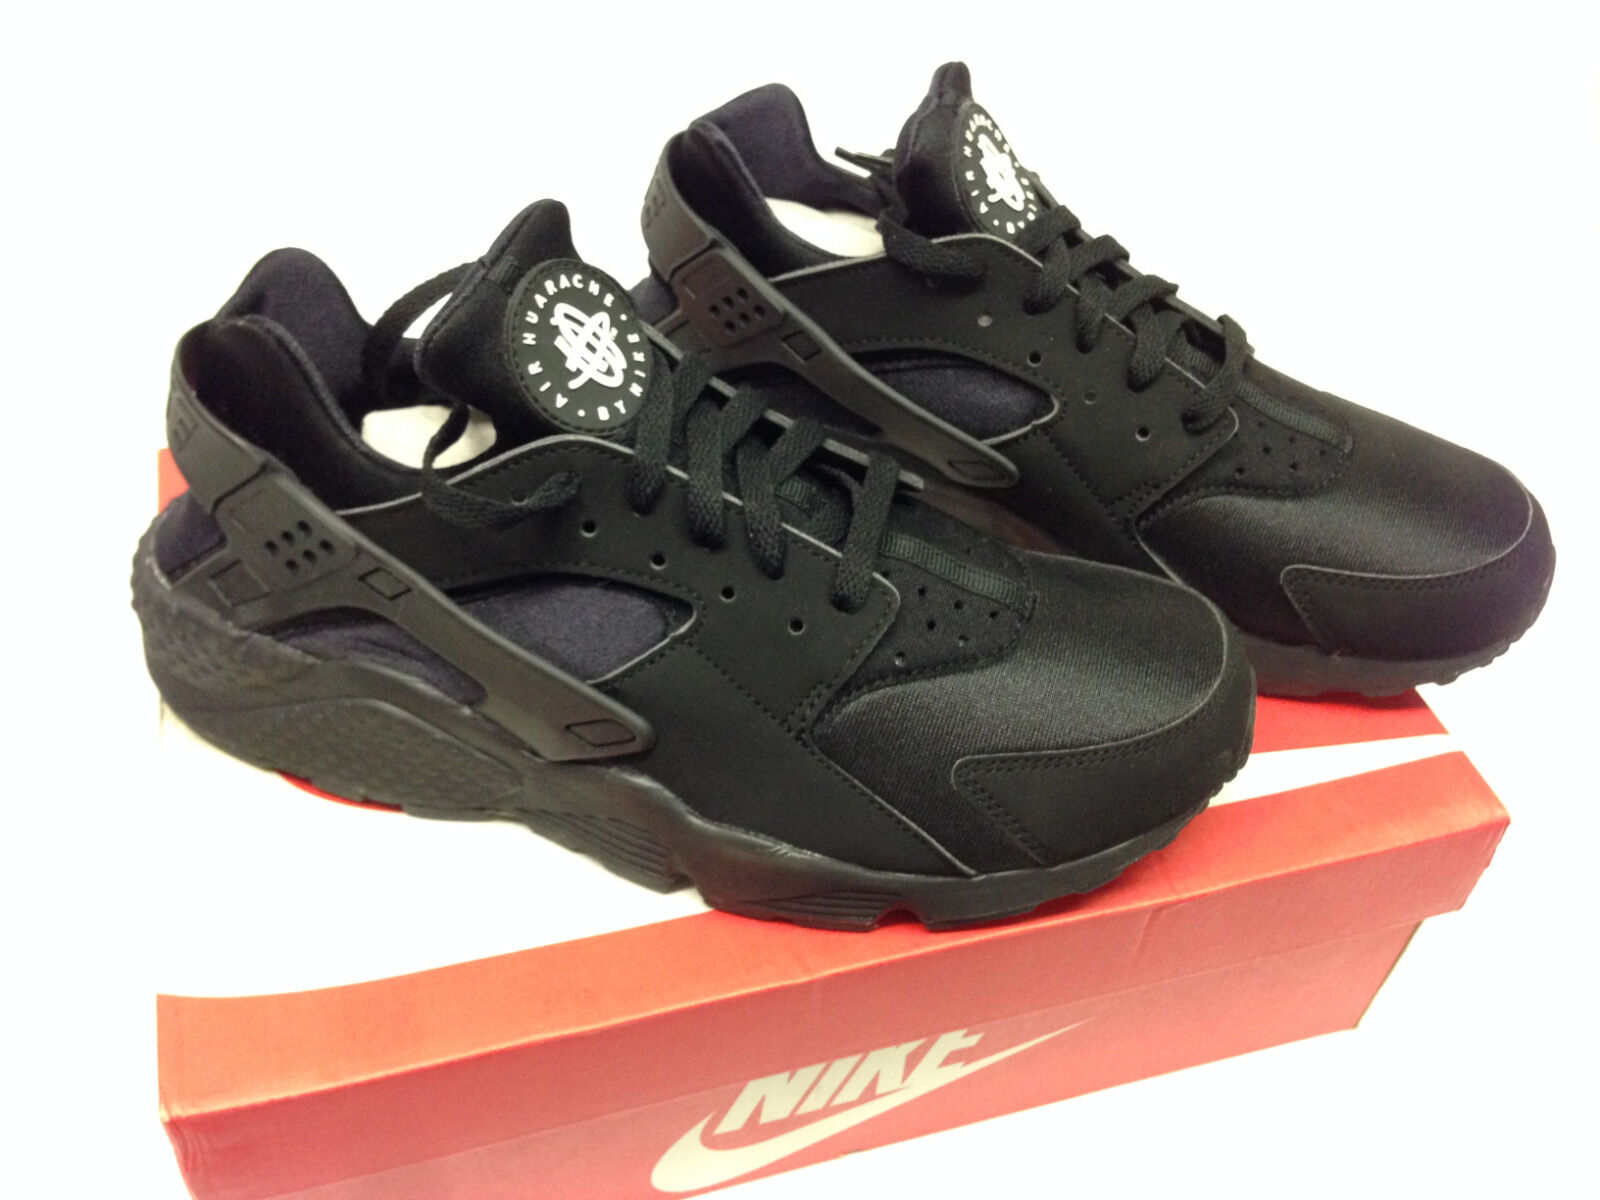 Nike - NEW Men's Nike Air Huarache Running Shoes 8-13 Size Black Black-White 318429-003